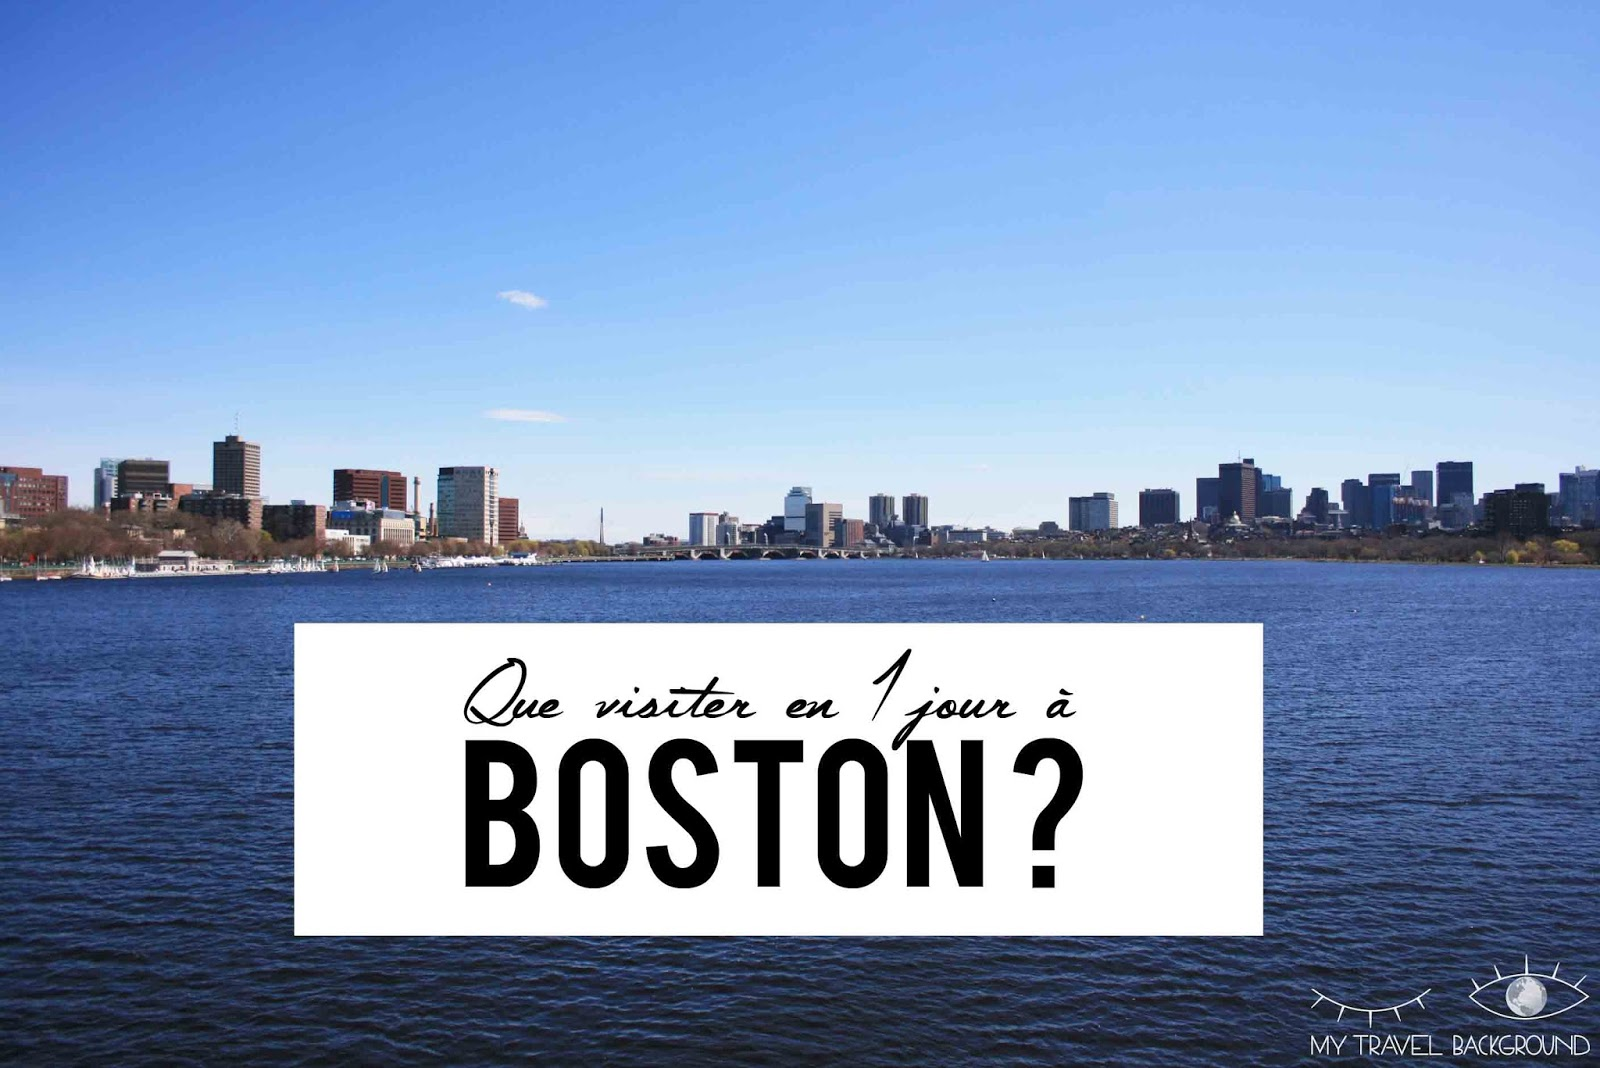 My Travel Background : Que visiter en 1 jour à Boston?